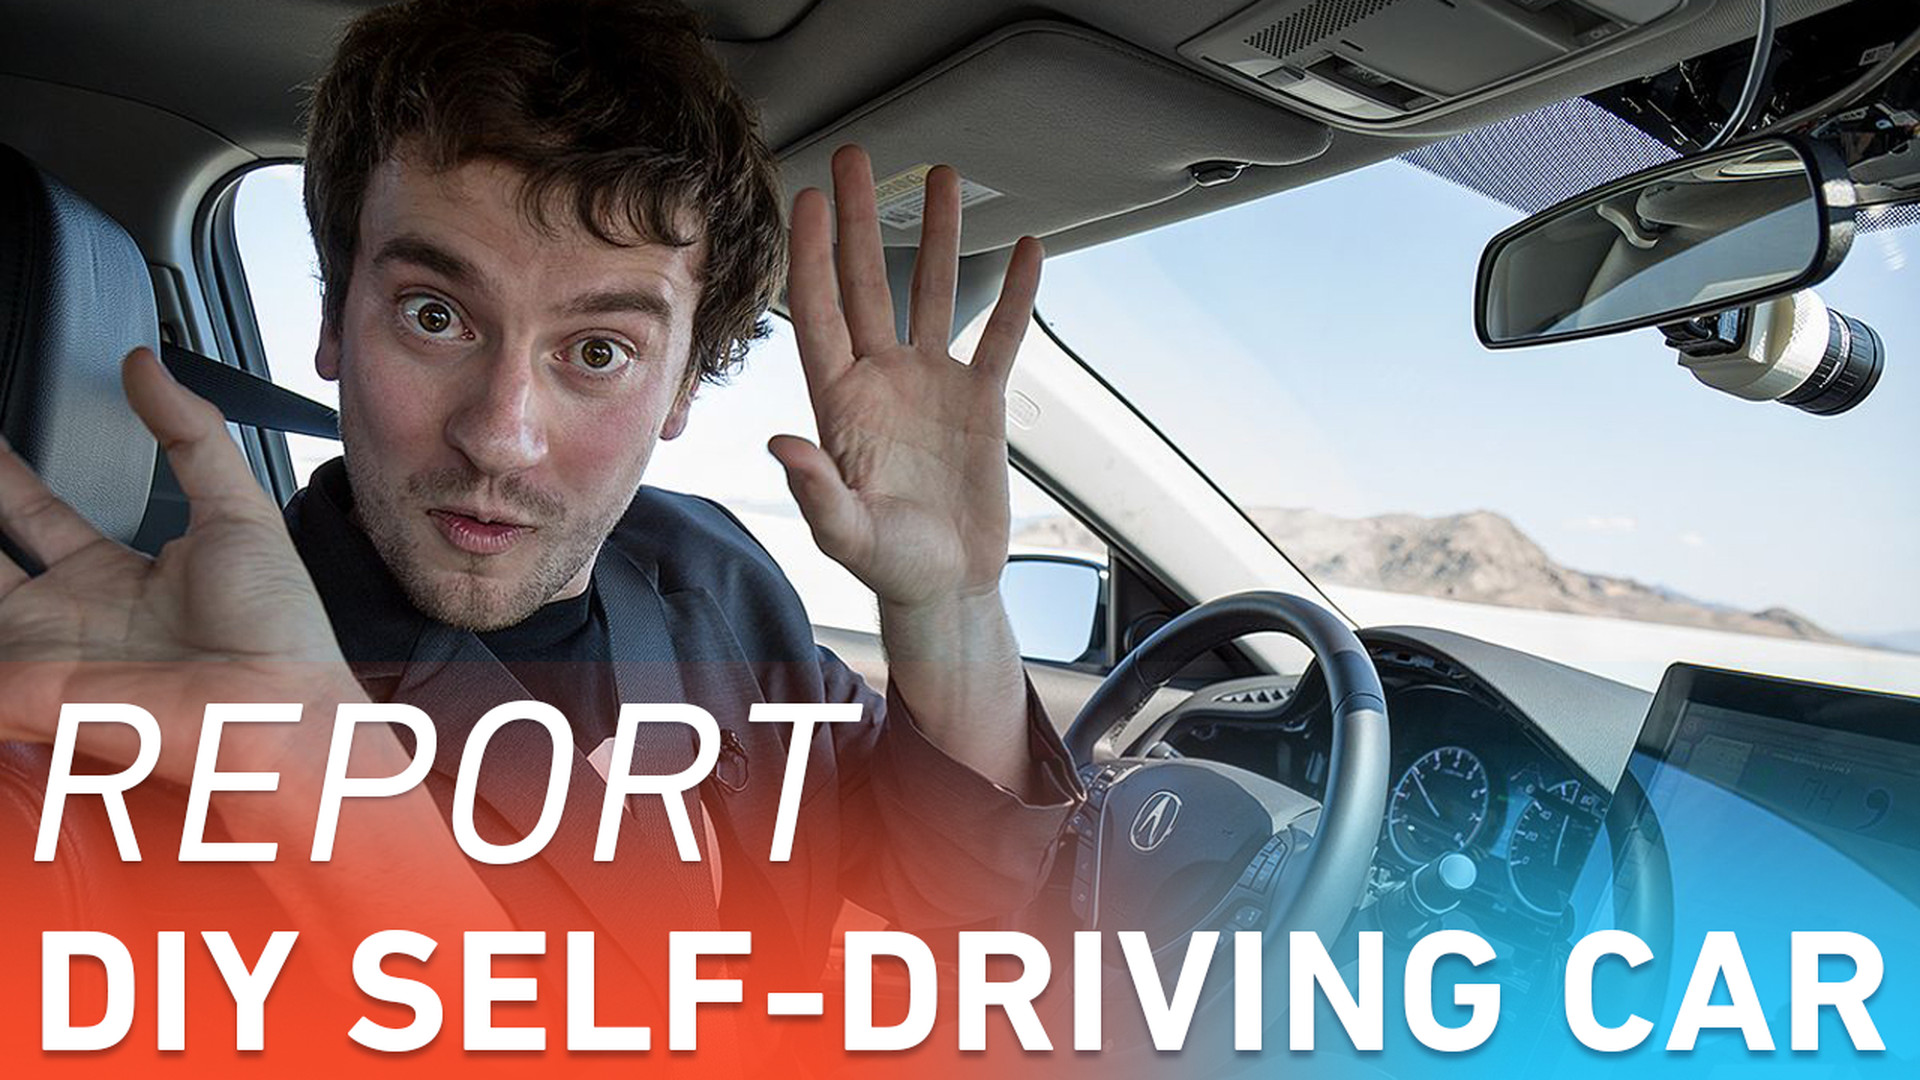 On the road with George Hotz's $1,000 self-driving car kit | The Verge